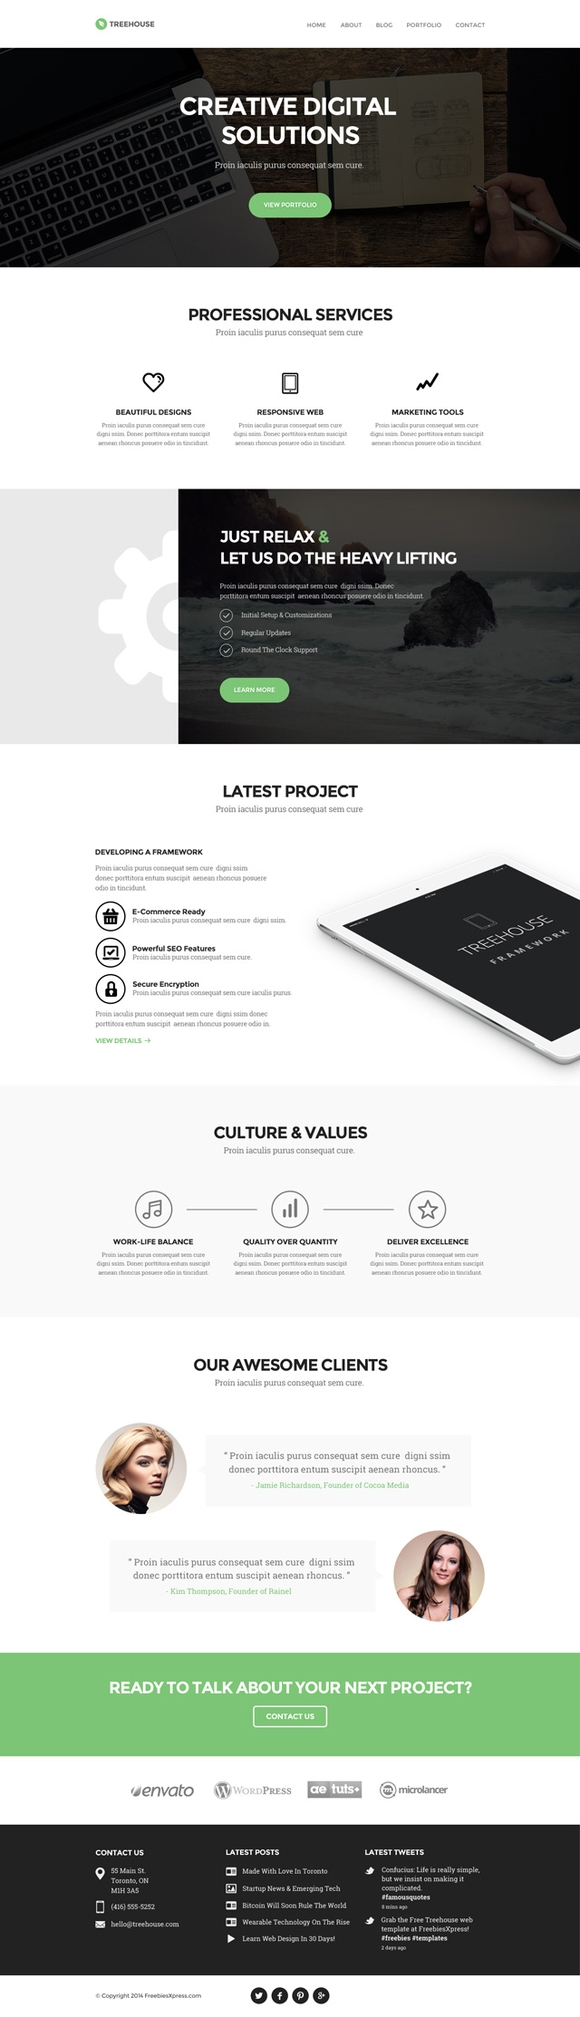 Treehouse - free website templates